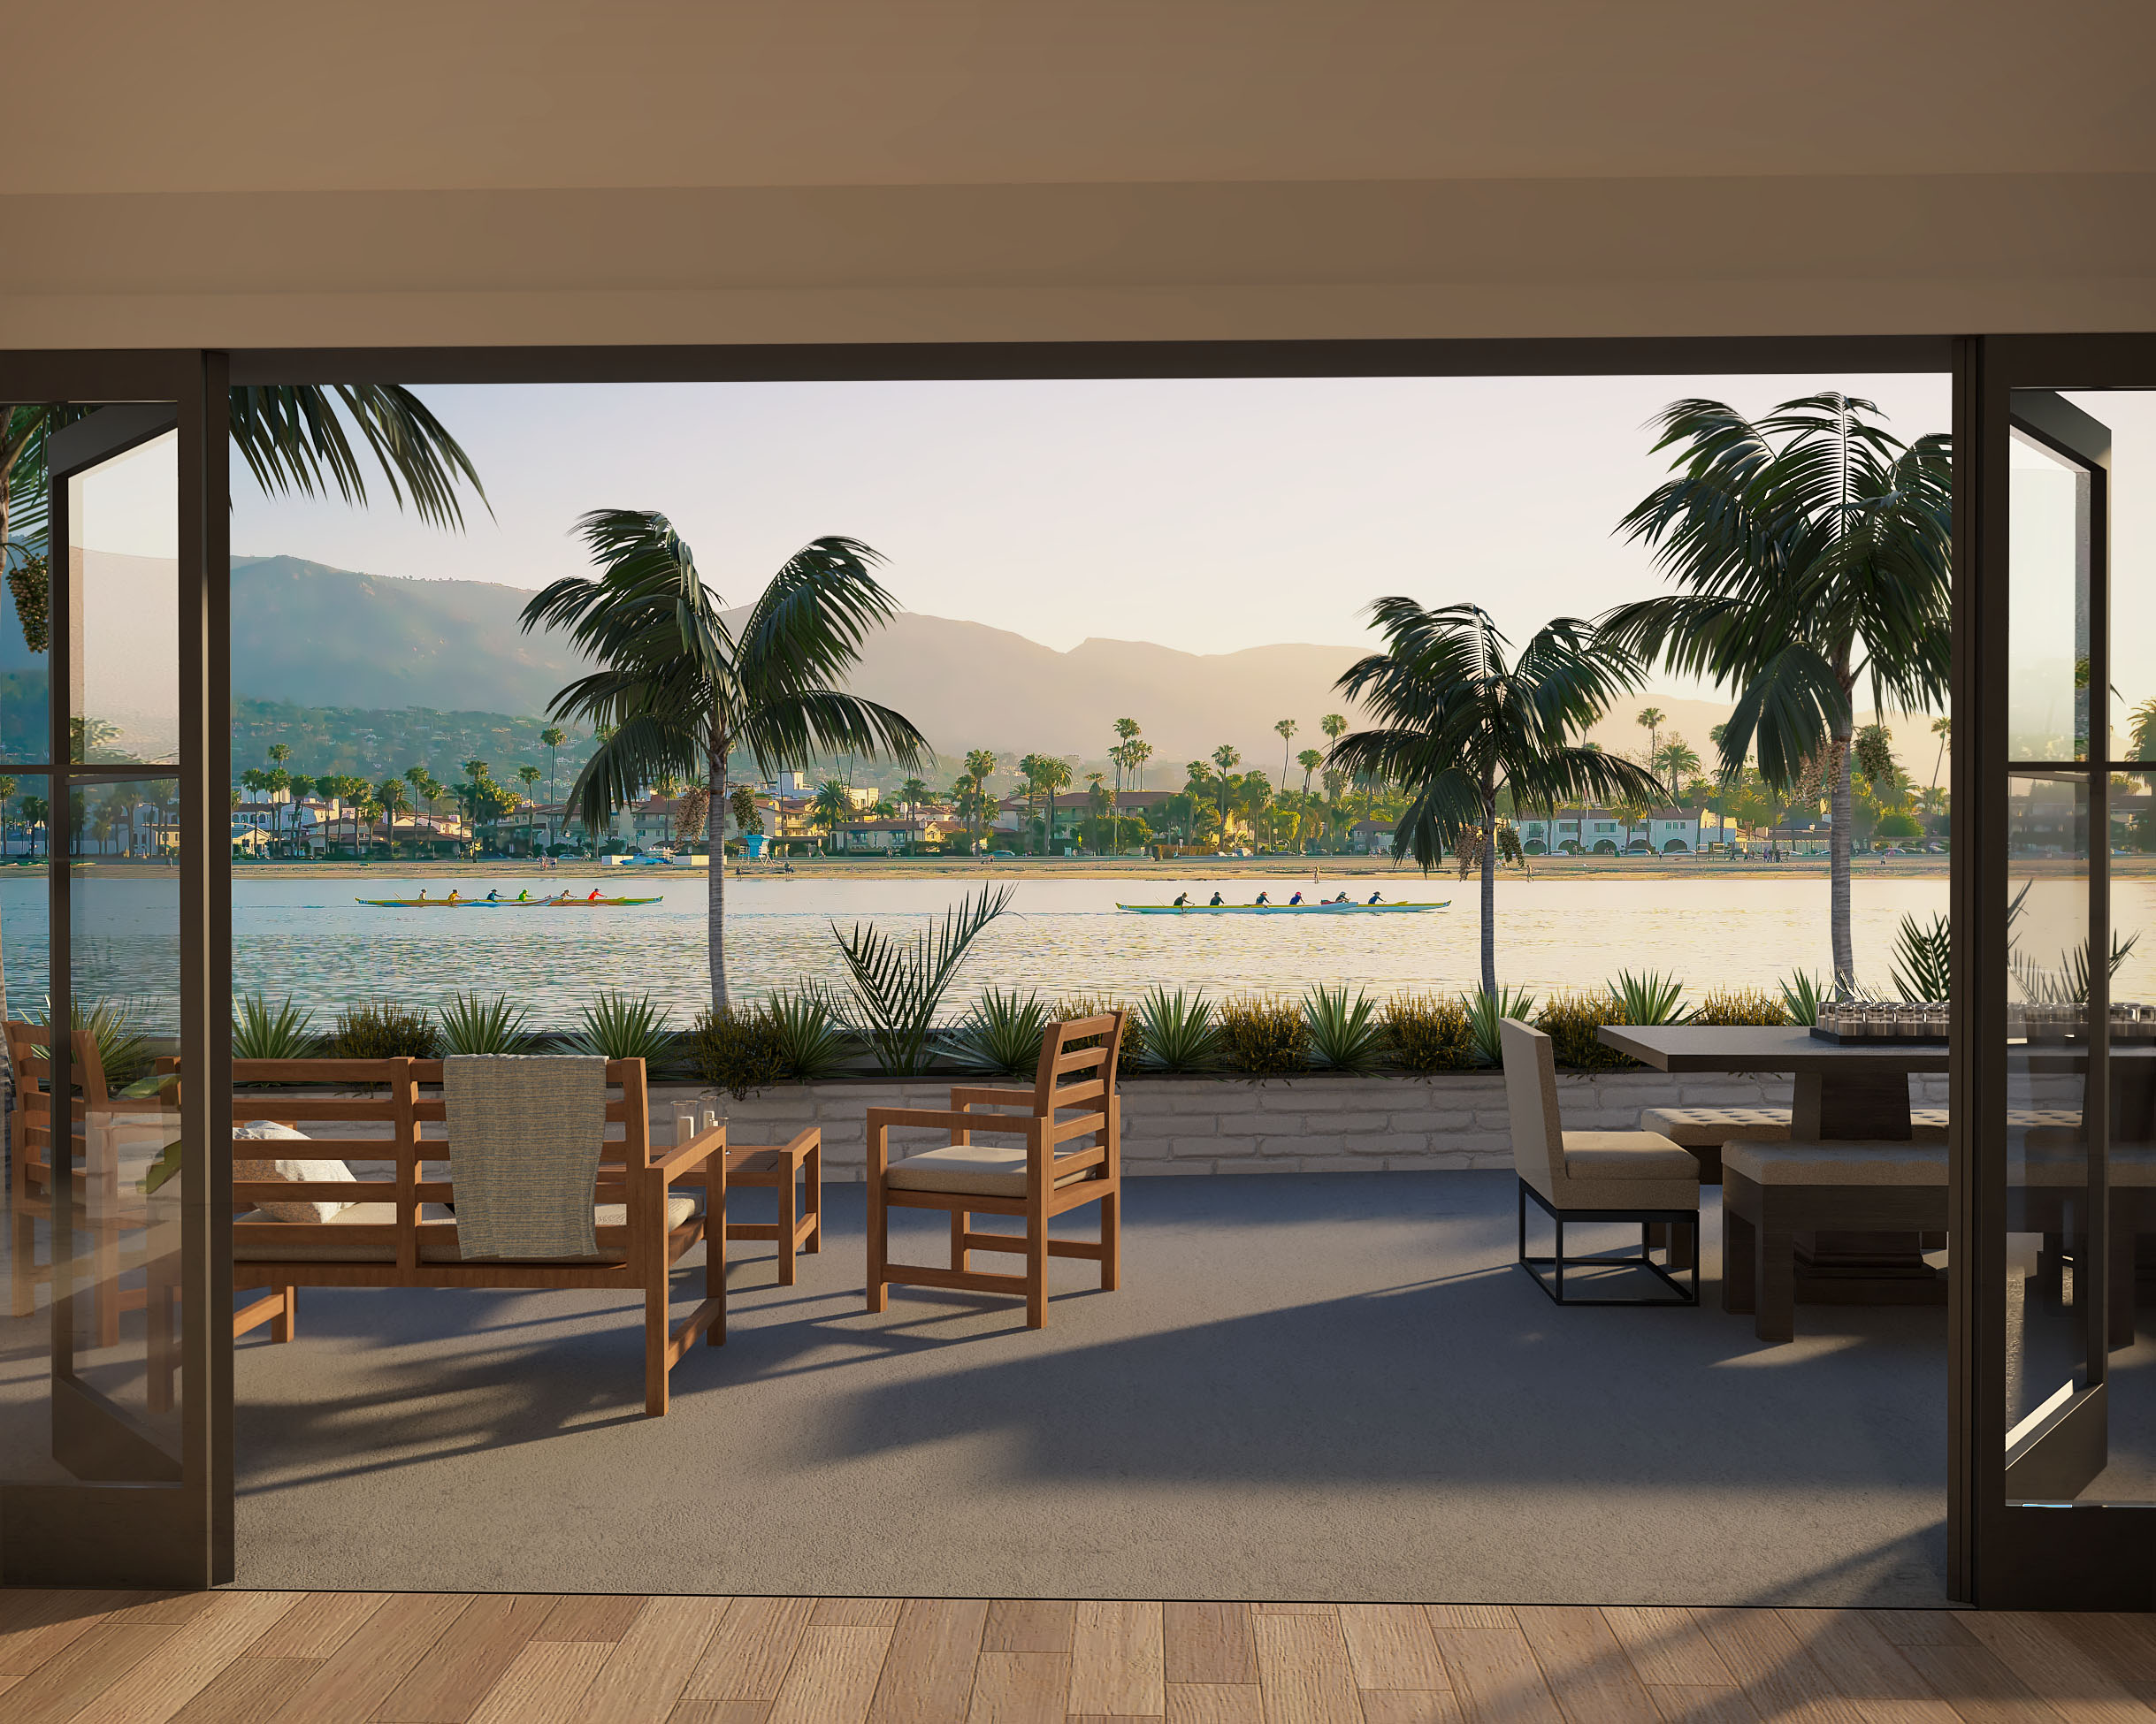 1_Coastal house_Patio view